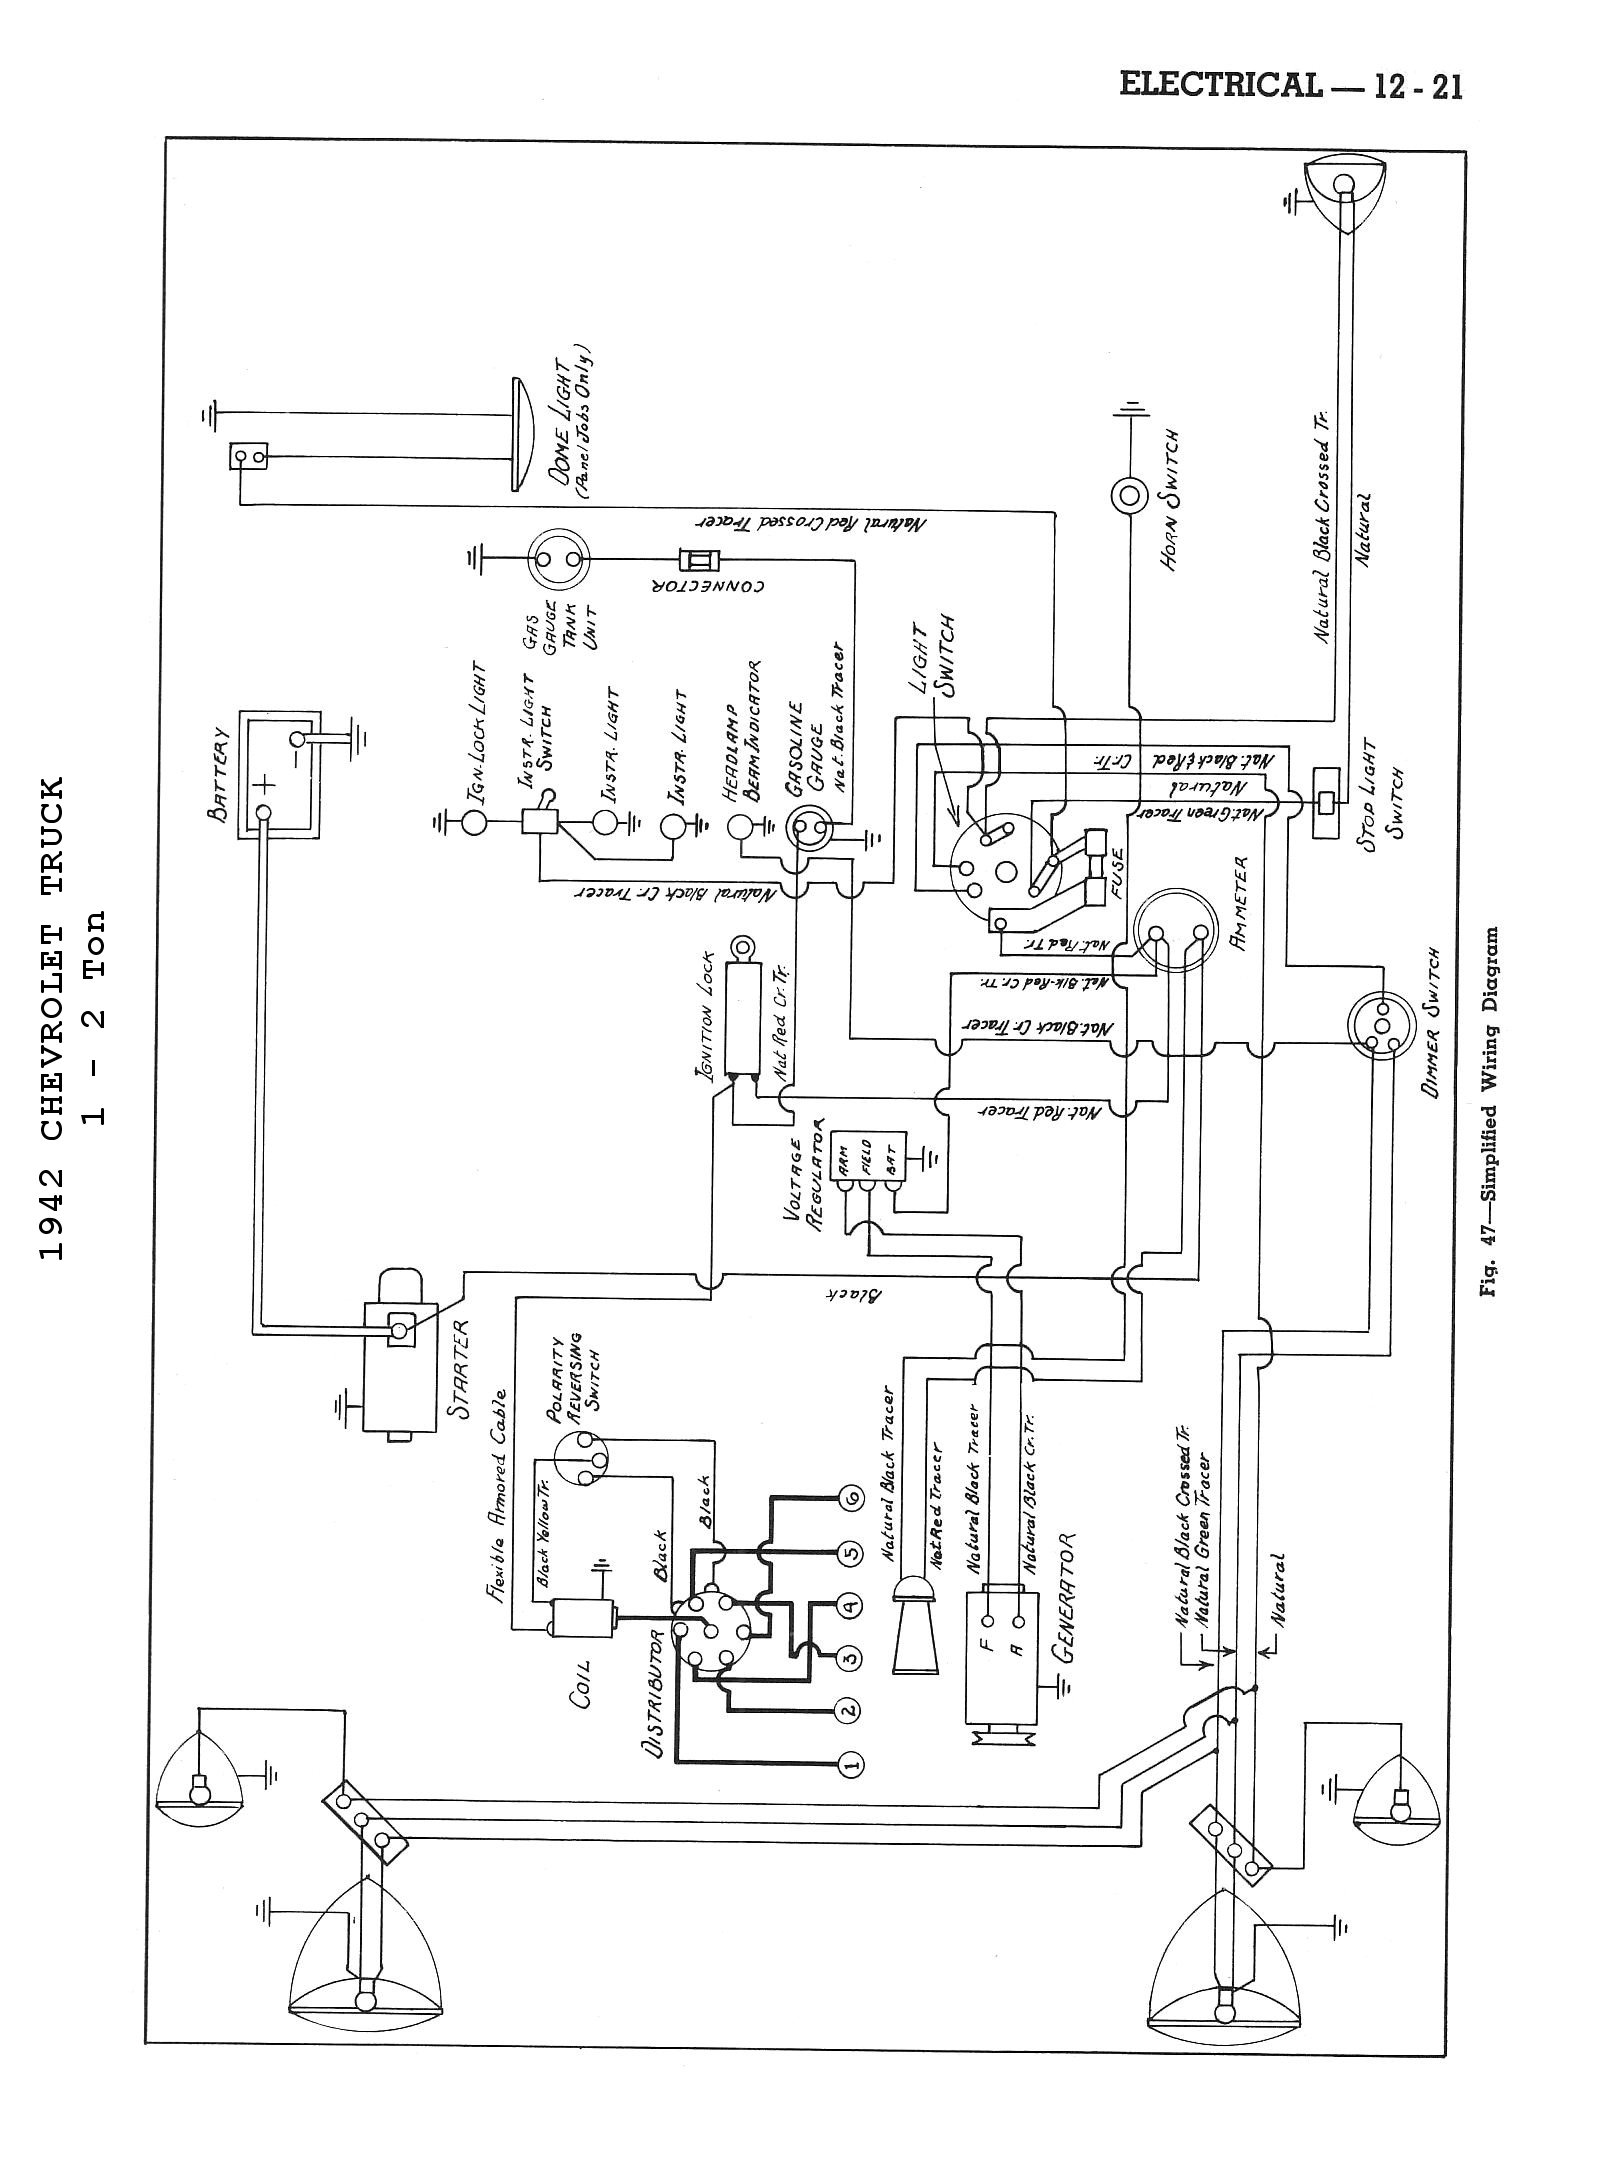 1936 Chevy Pickup Wiring Diagram 1988 Ford F100 Turn Signal Truck Not Lossing U2022chevrolet Diagrams For